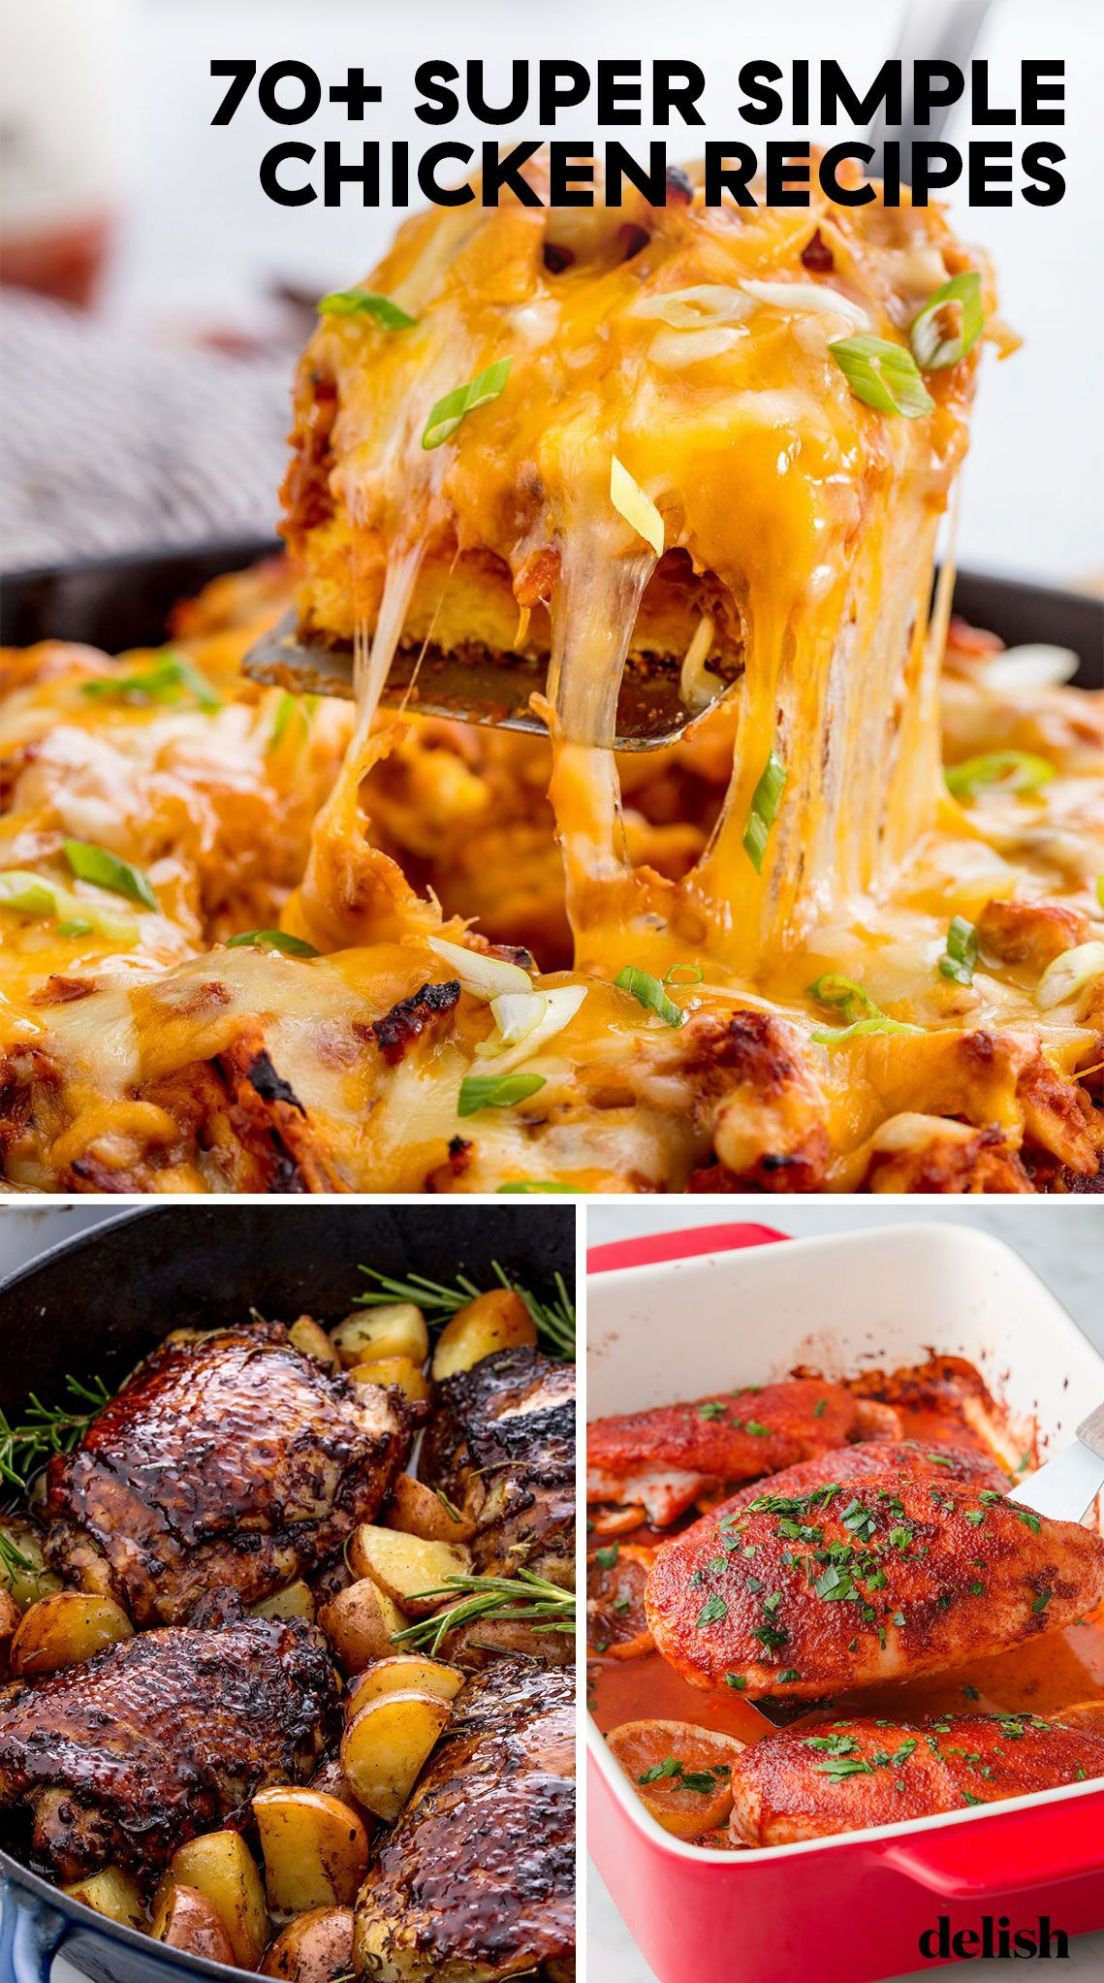 12+ Easy Chicken Dinner Recipes - Simple Ideas for Chicken Dishes - Simple Recipes With Chicken